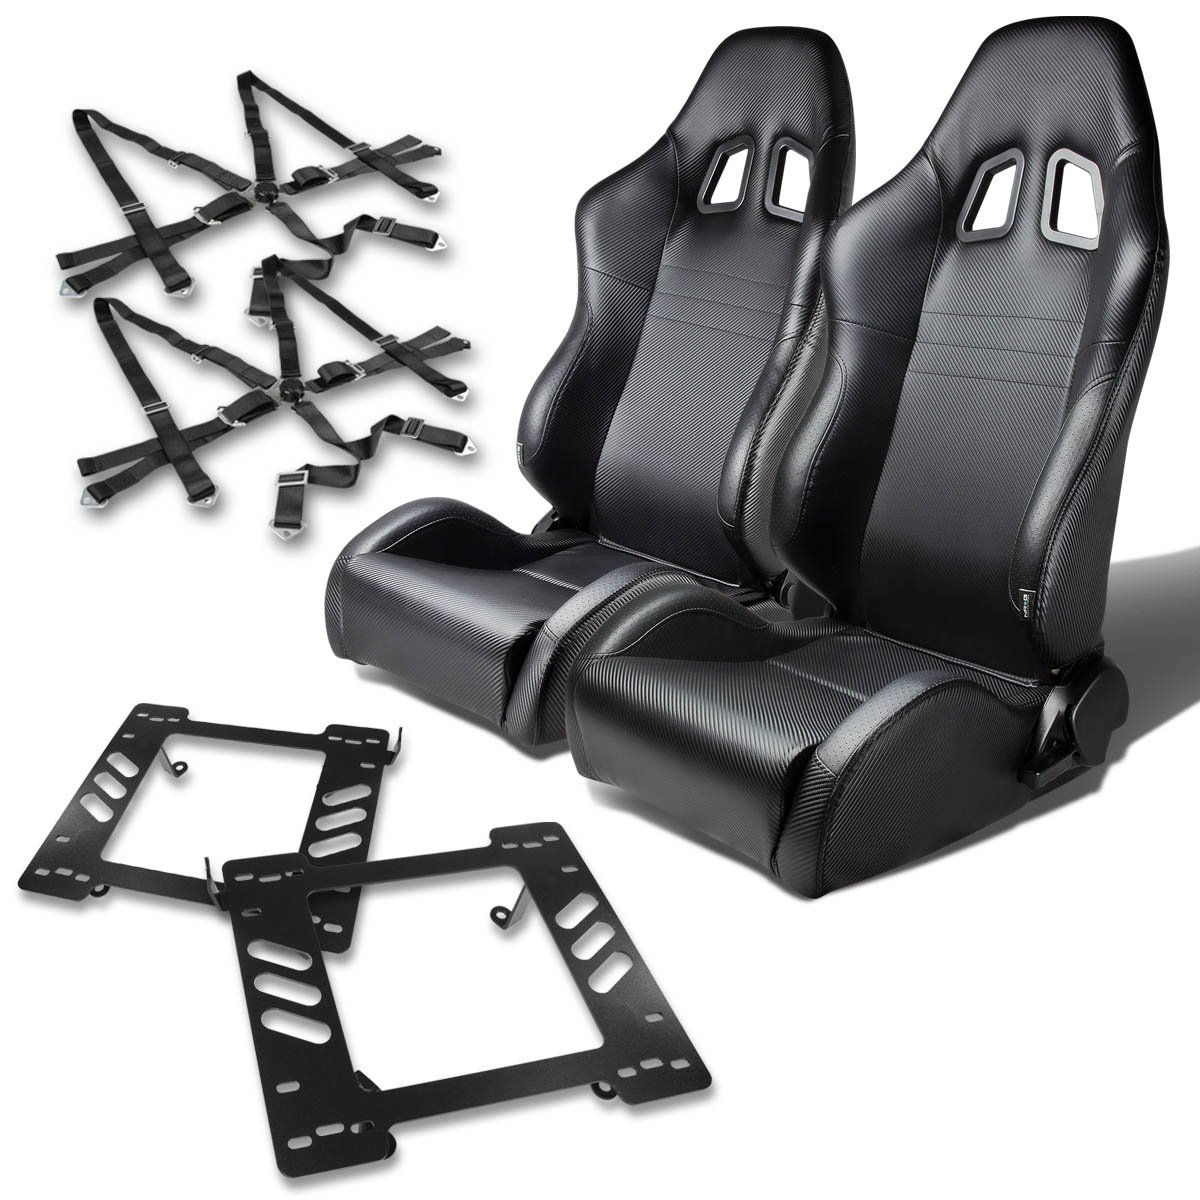 For Jeep Wrangler TJ Pair of PVC Leather Racing Seats (Carbon Fiber Look)+Seat Bracket+6-Point Camlock Red Belt Auto Dynasty